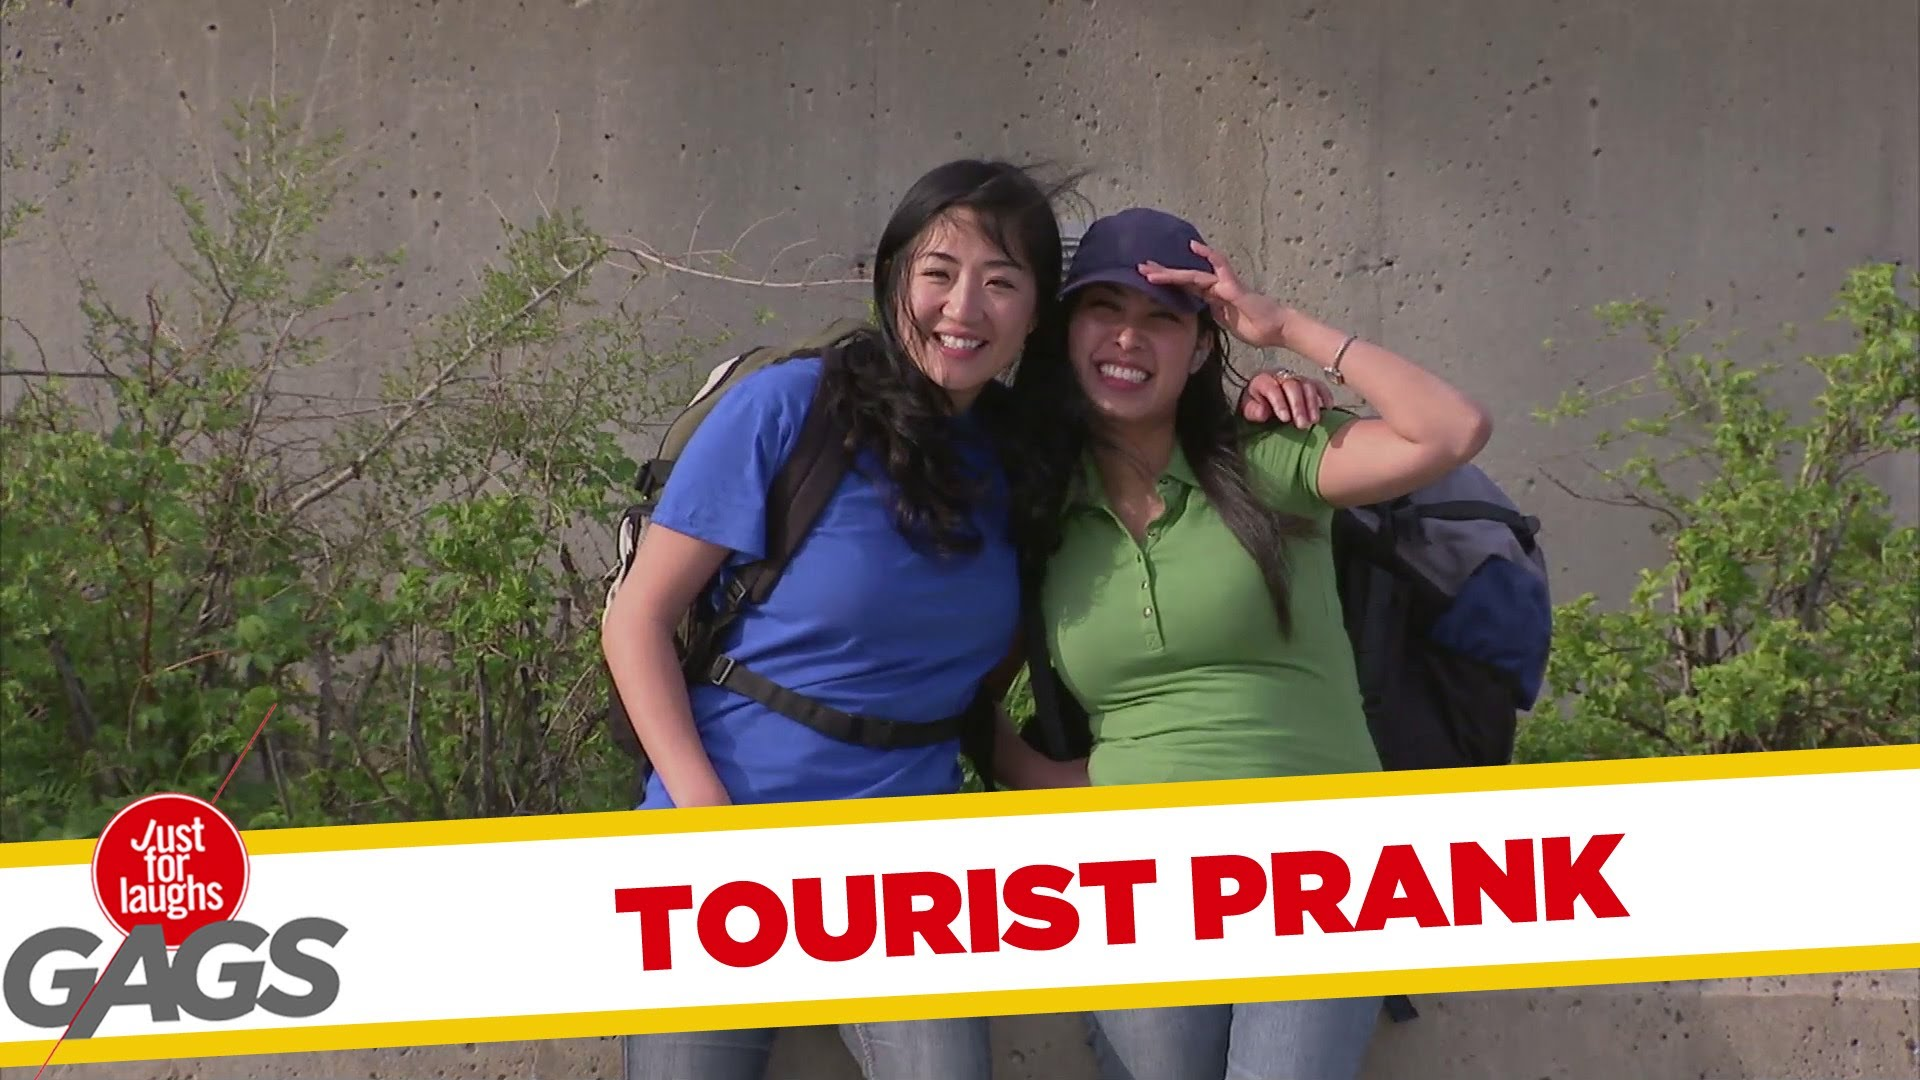 The tourist online filmer game